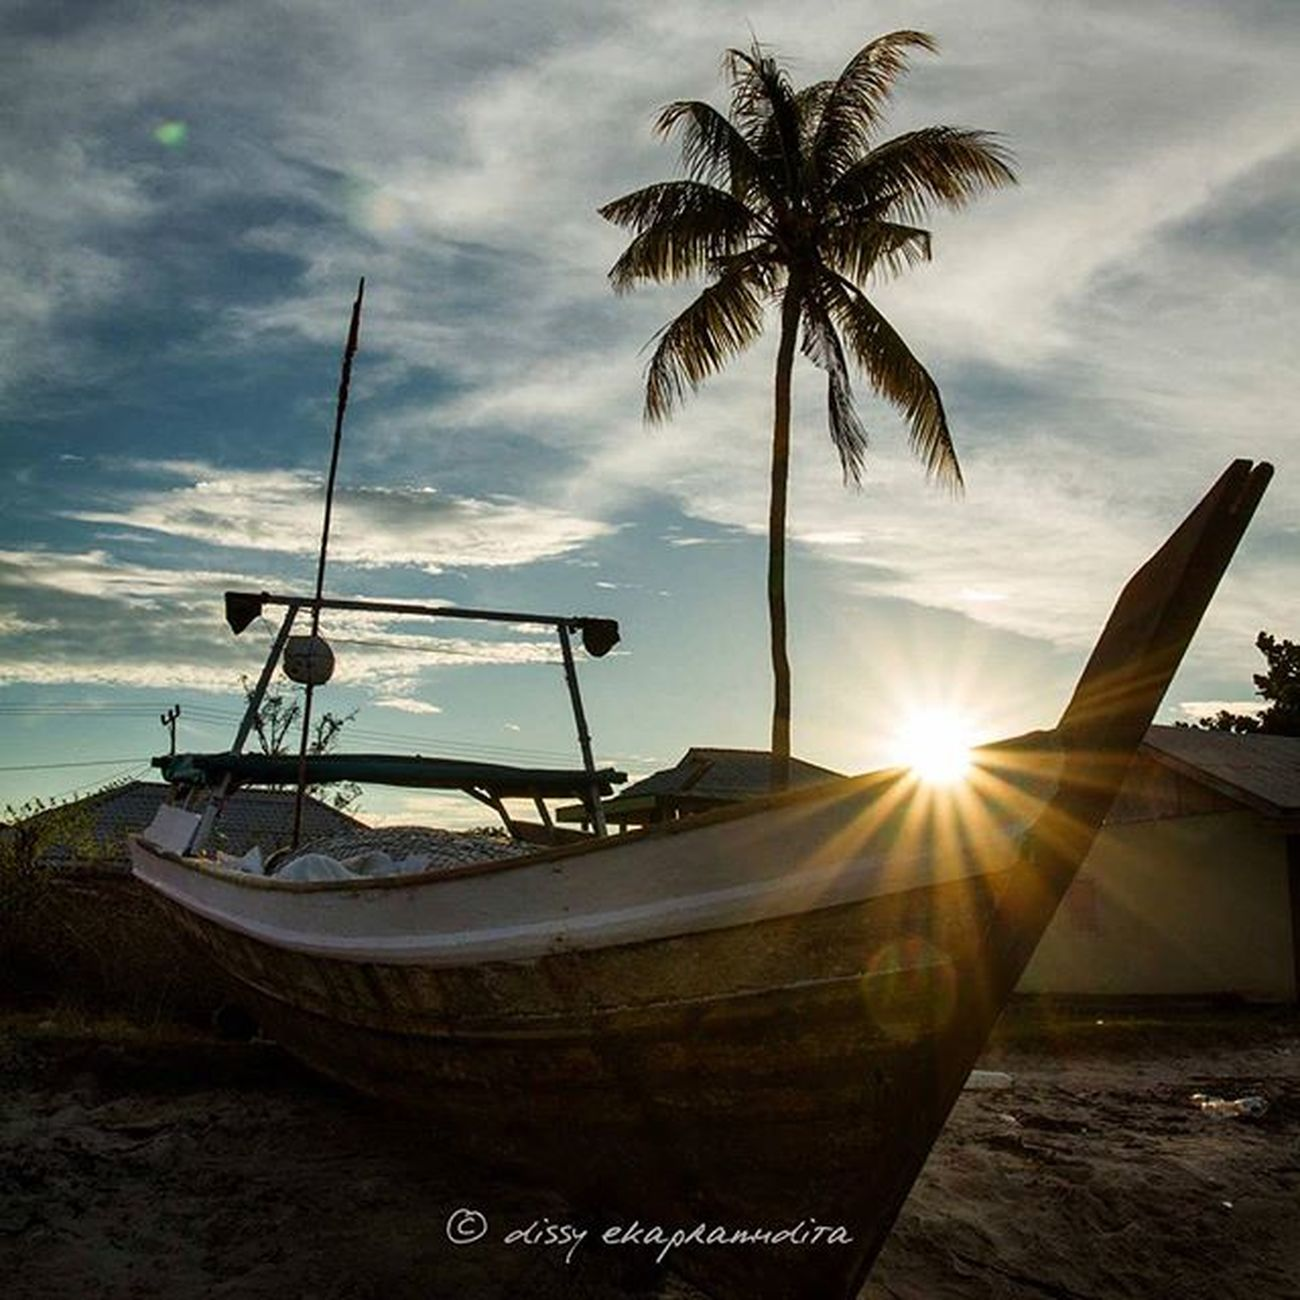 Almost sunset Rupat Sumatera Sunset Boat INDONESIA Indonesiaplayground 1000kata Wonderfulindonesia BeautifulIndonesia Natgeotravel Asiangeographic Instalike Instagram Instagood Photooftheday